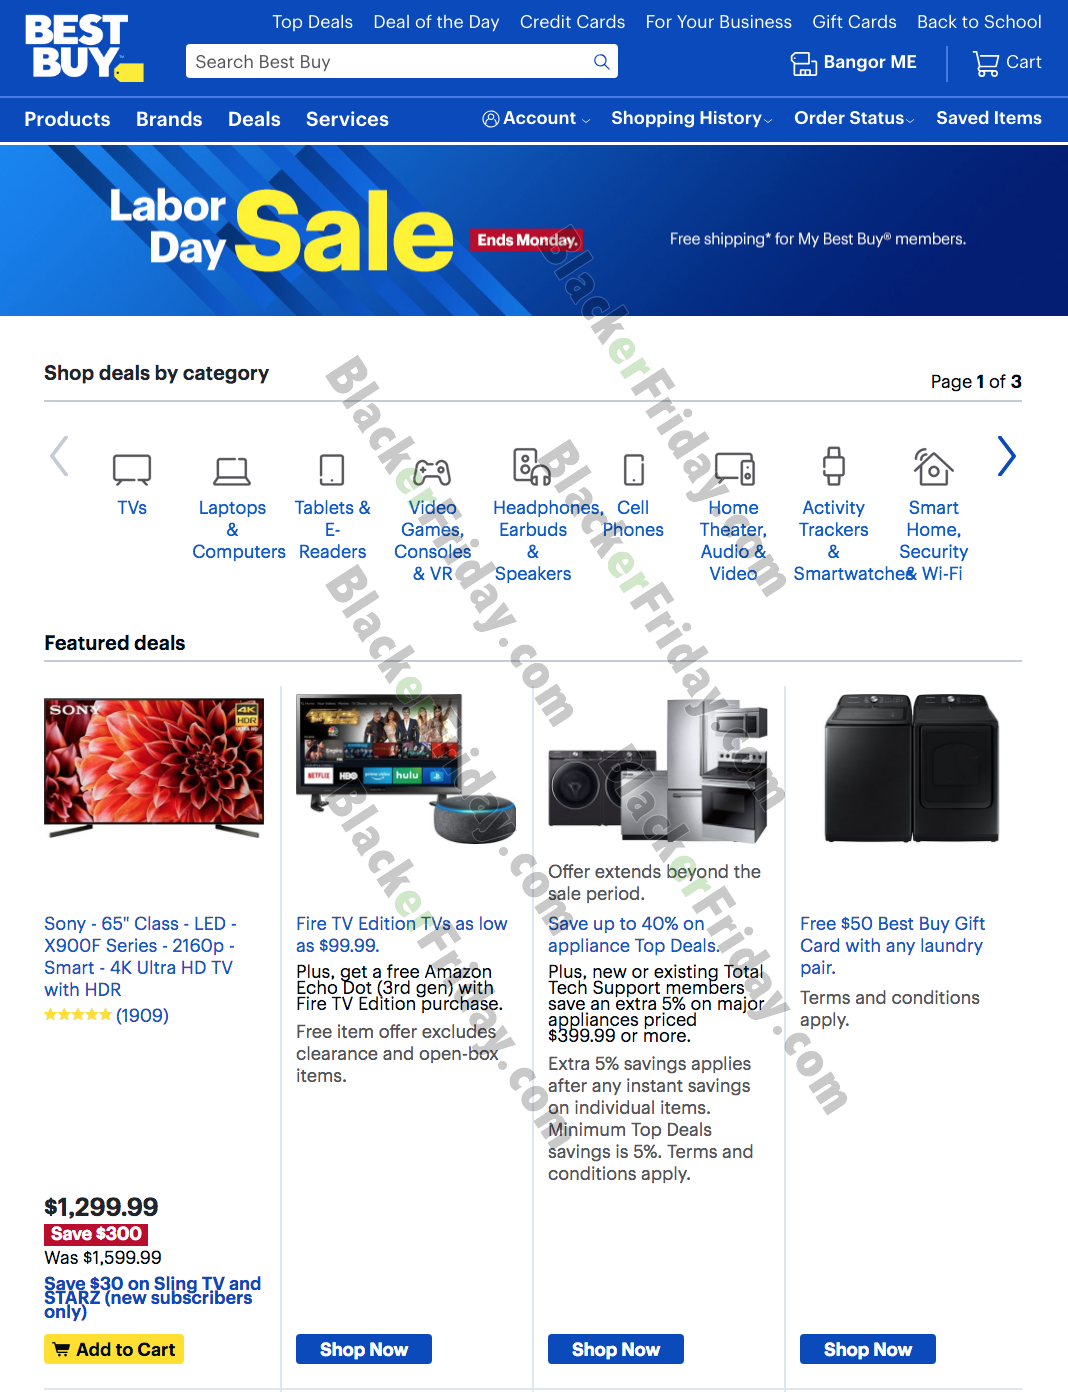 Best Buy Labor Day Sale 2021 Blacker Friday